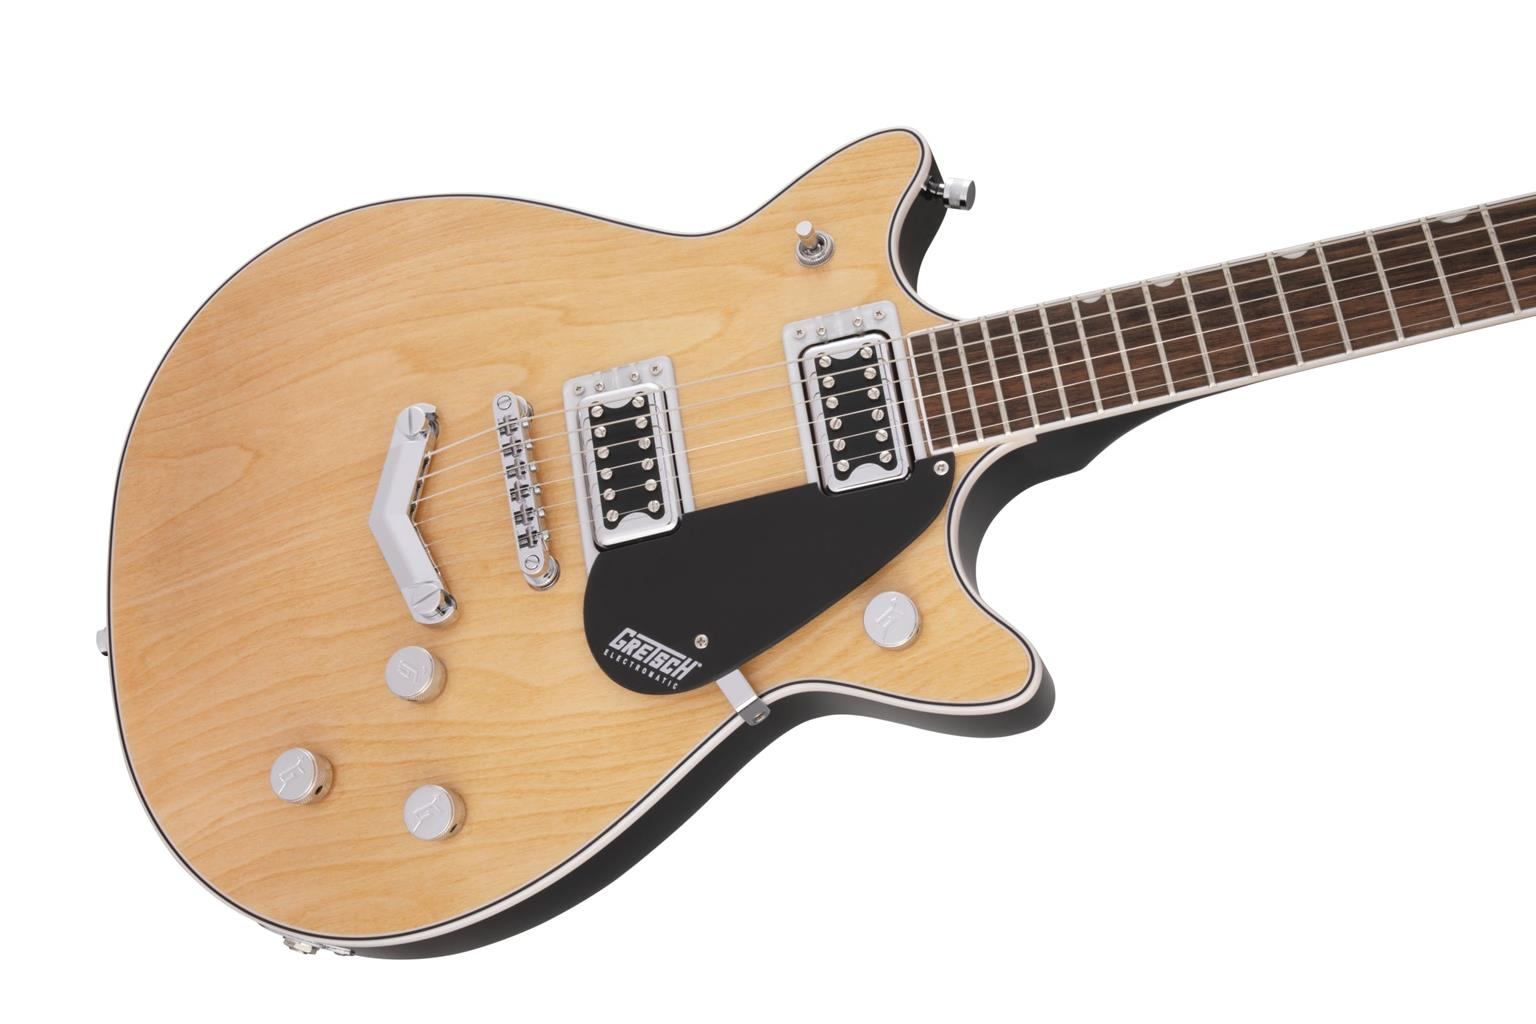 GRETSCH G5222 Electromatic Double Jet BT with V-Stoptail LF Aged Natural 2509310521